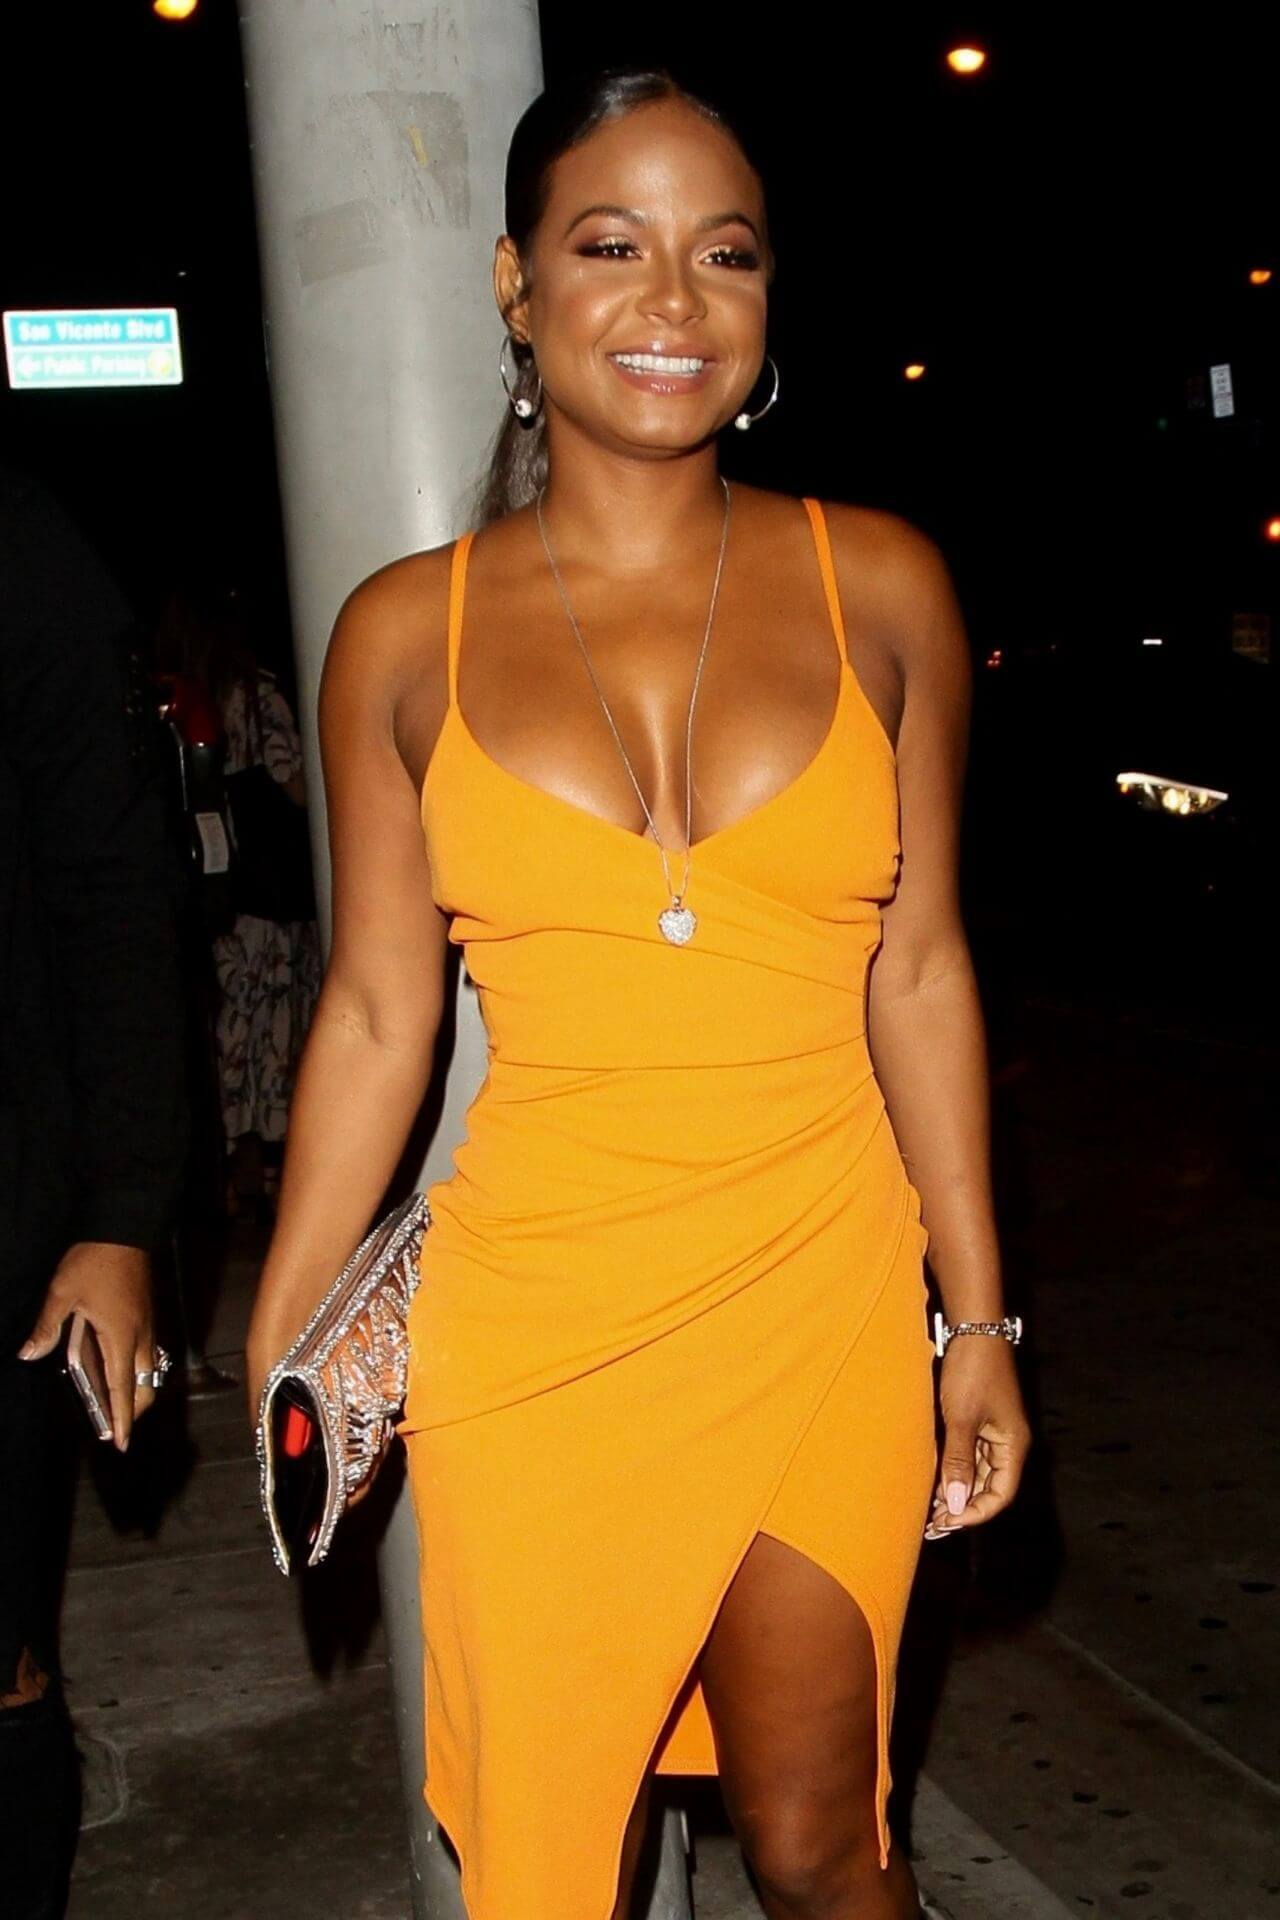 CHRISTINA MILIAN sexy yellow dress